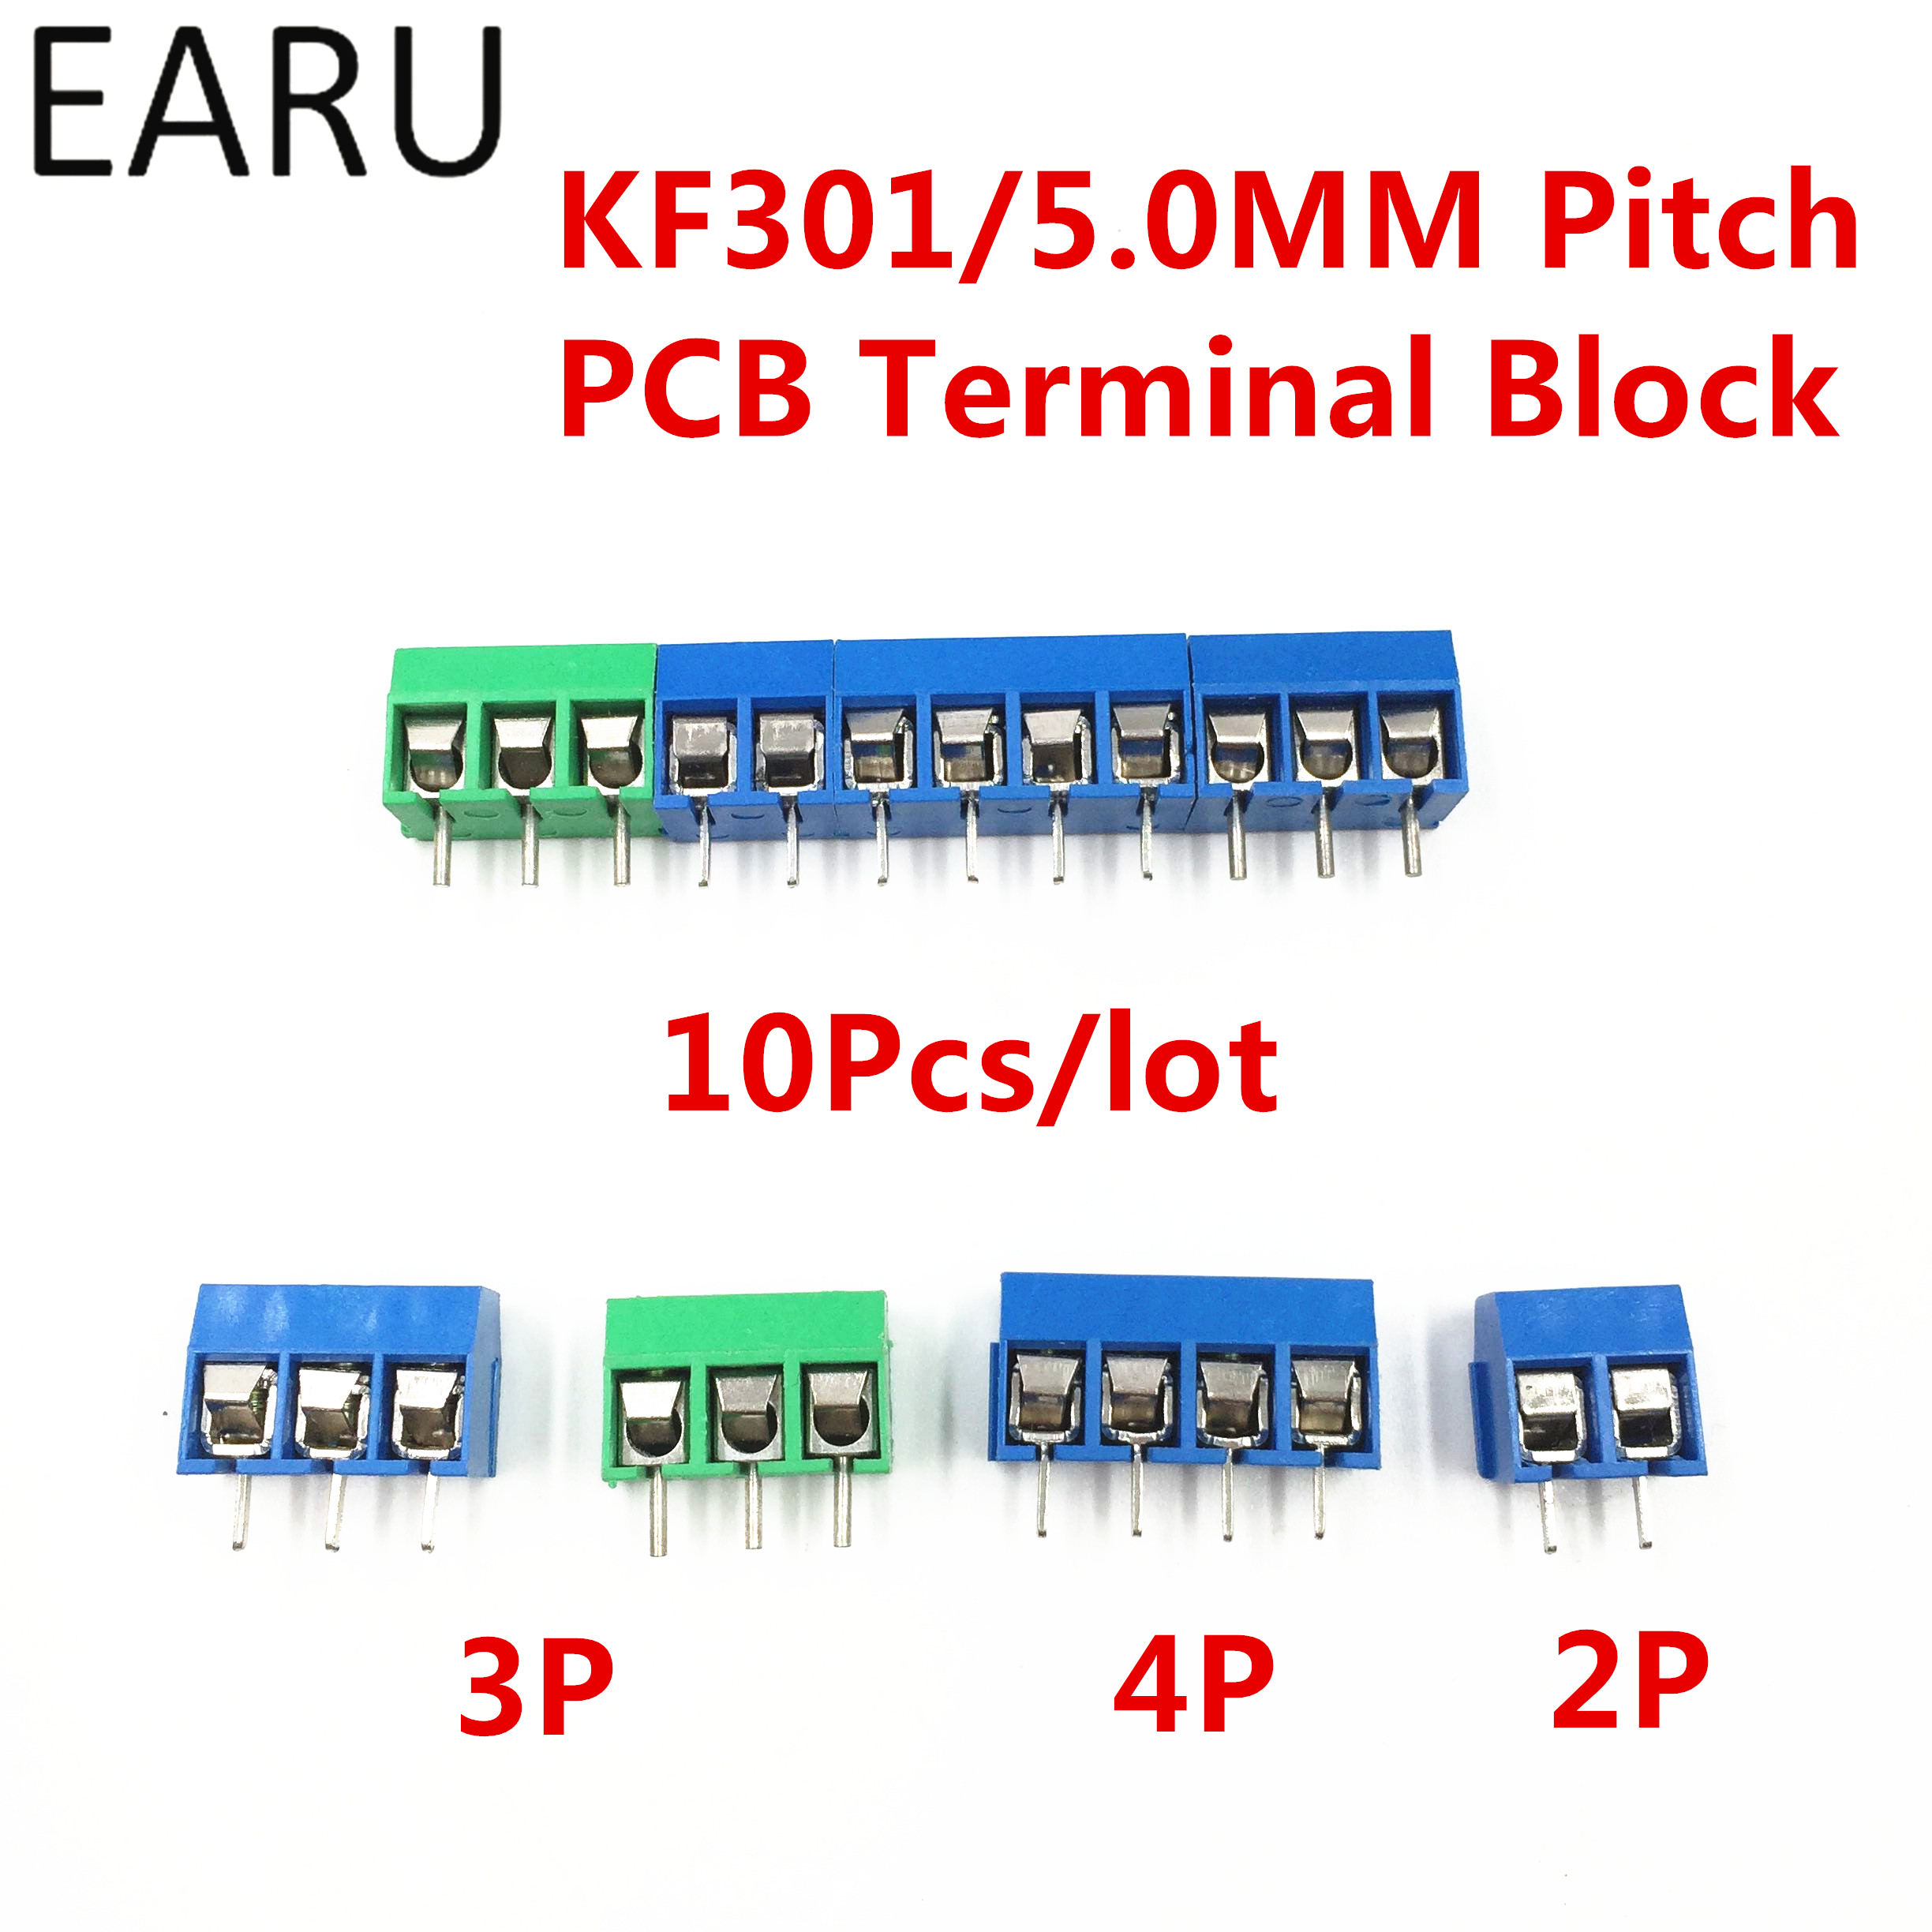 10Pcs/lot KF301-5.0-2P KF301-3P KF301-4P Pitch 5.0mm Straight Pin 2P 3P 4P Screw PCB Terminal Block Connector Blue Green 10pcs red blue 2 54mm pitch slide type switch 1p 2p 3p 4p 5p 10p dip switch new